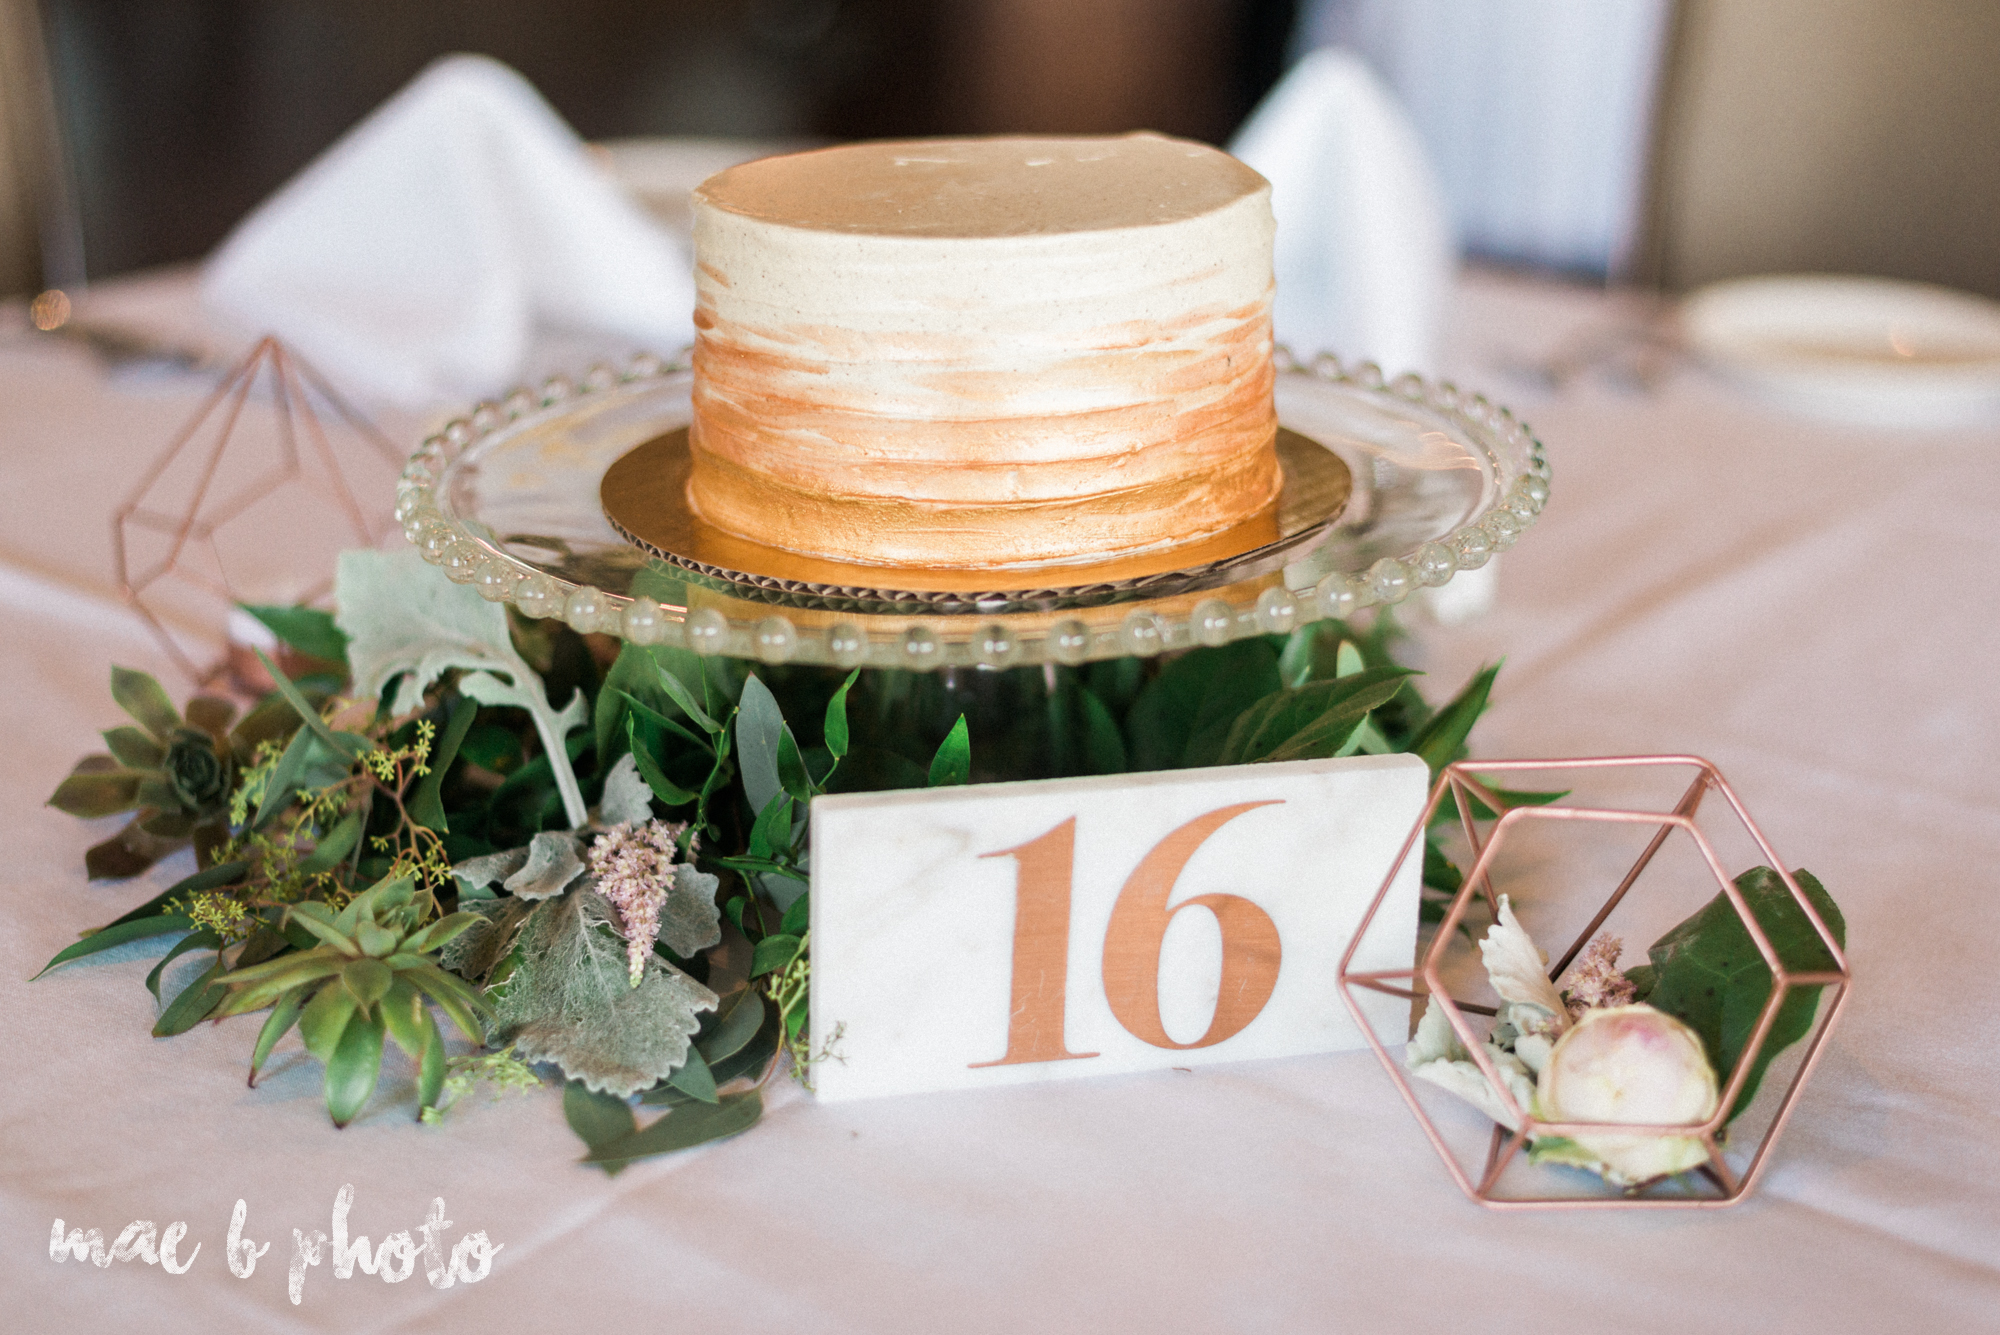 emily and michael's industrial chic summer country club wedding at the lake club in poland ohio photographed by cleveland wedding photographer mae b photo-85.jpg